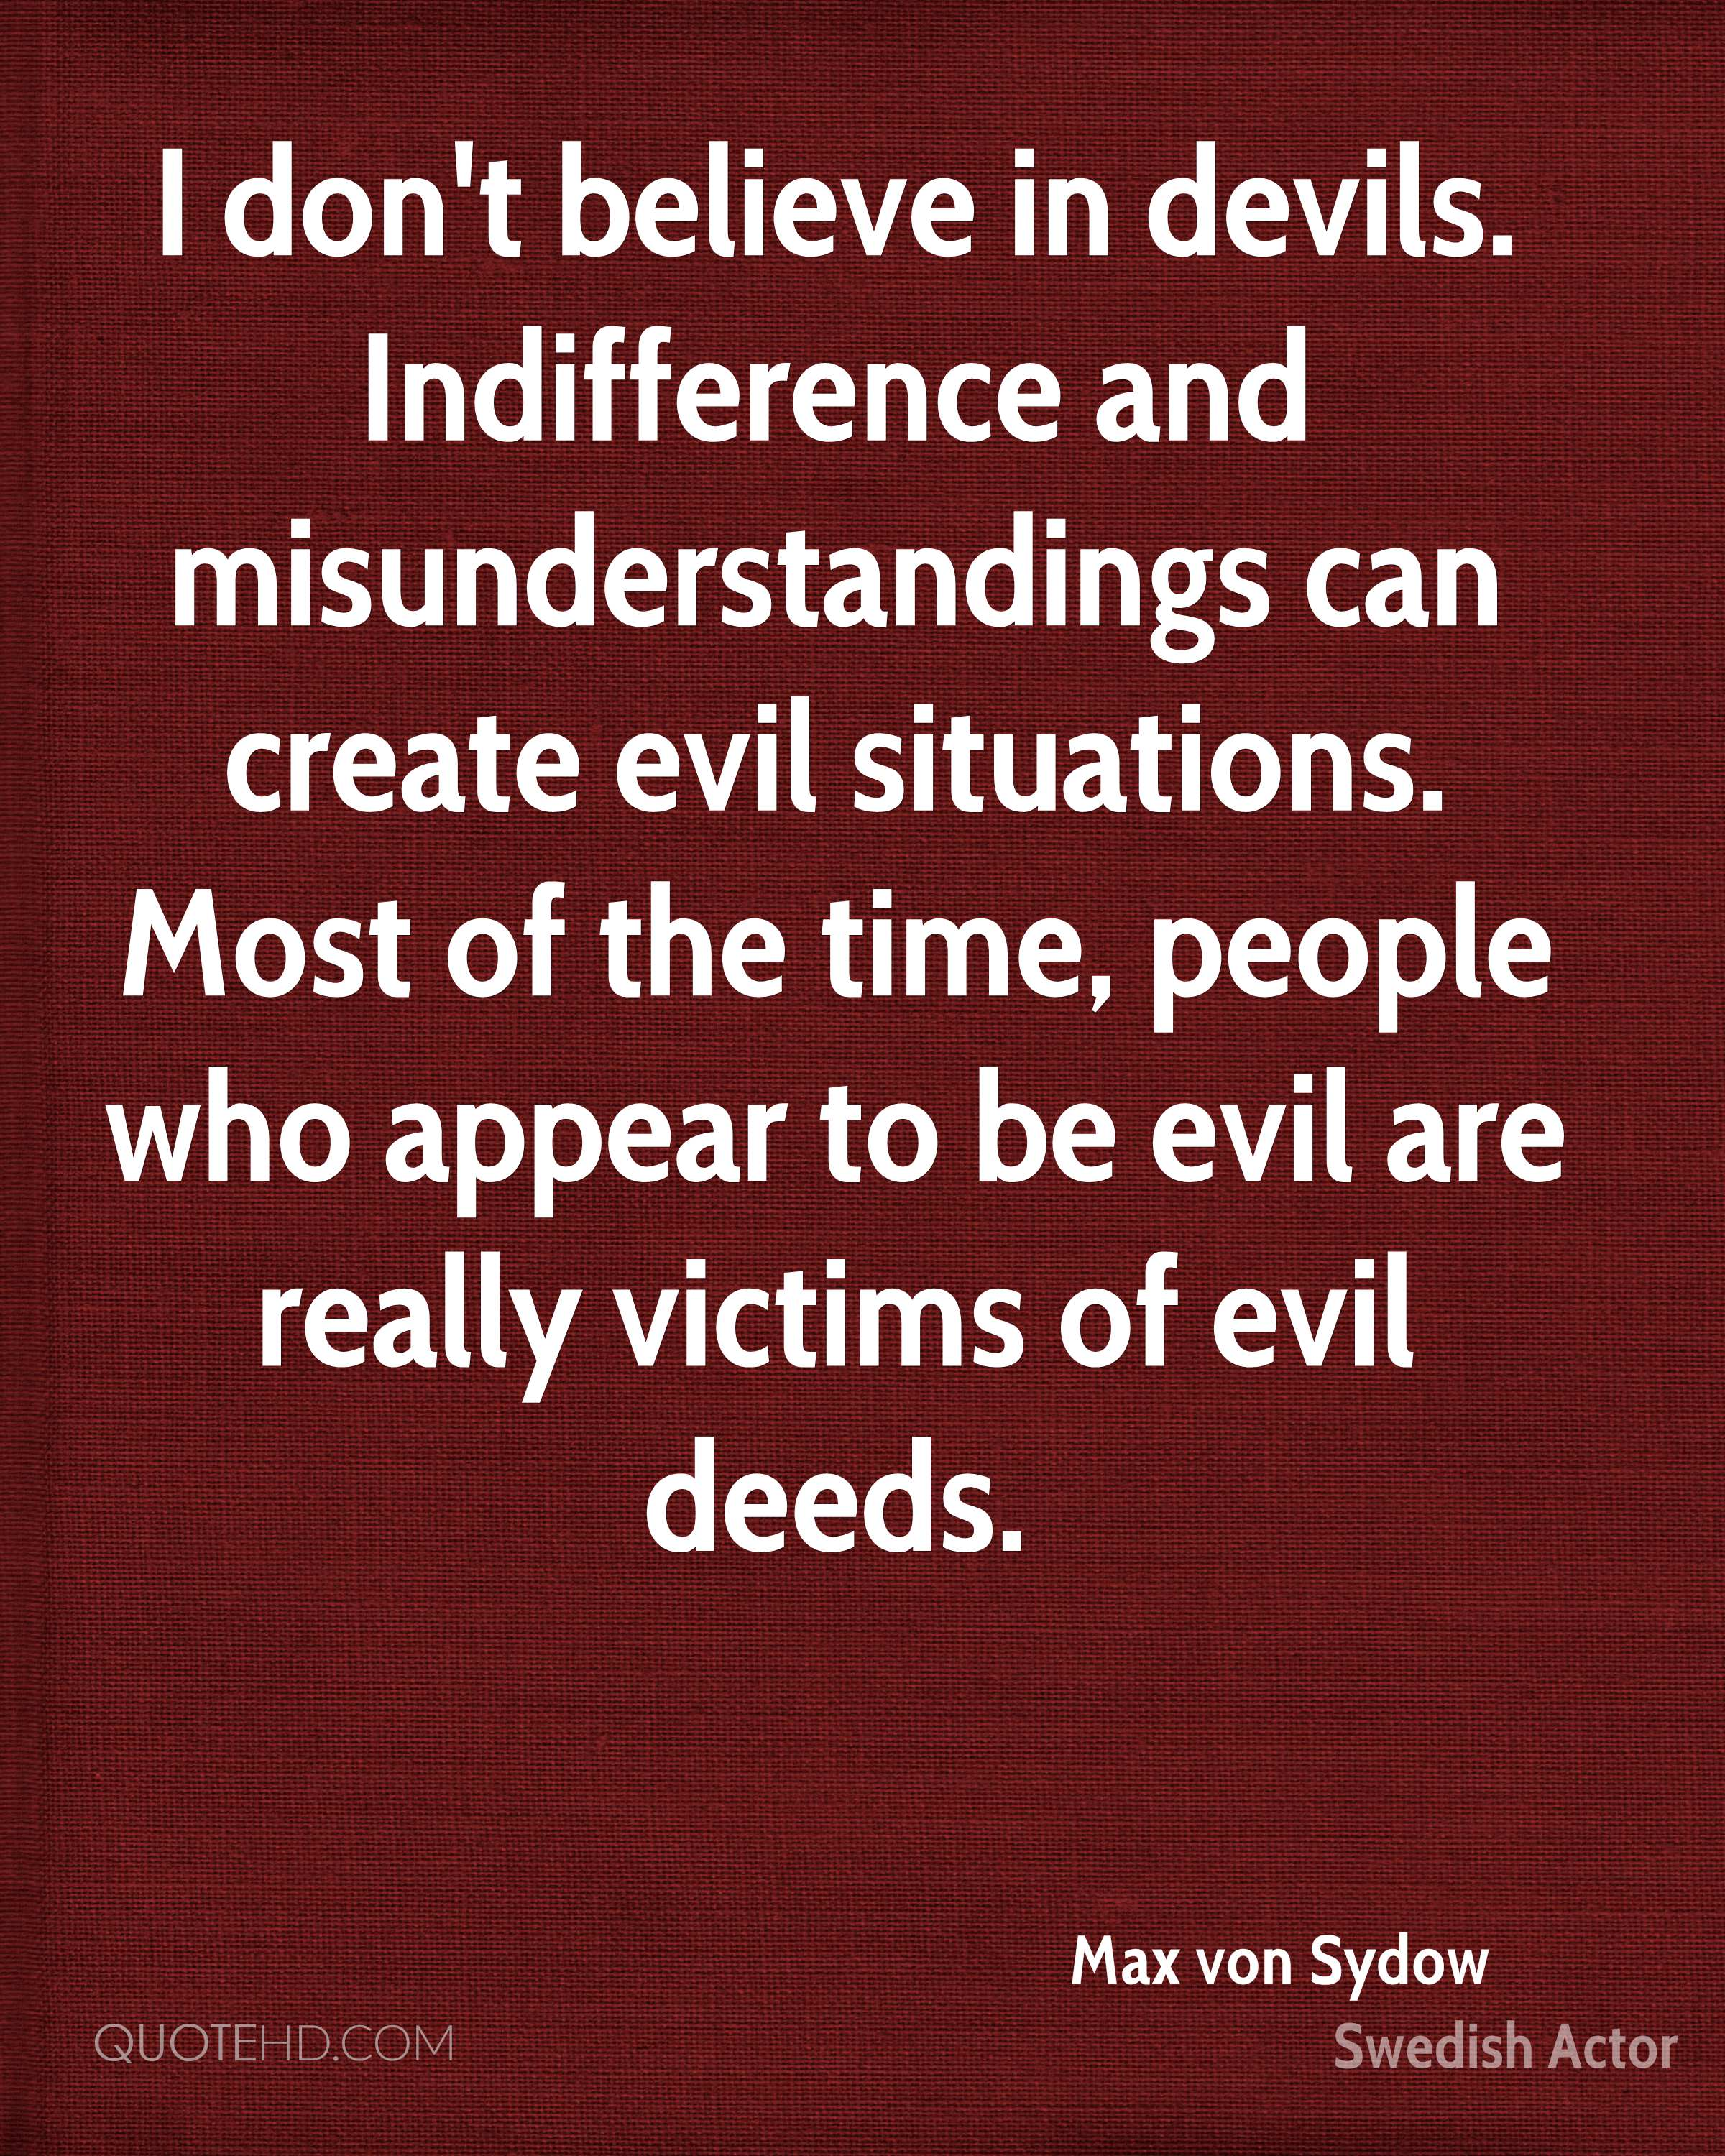 10 victims of indifference